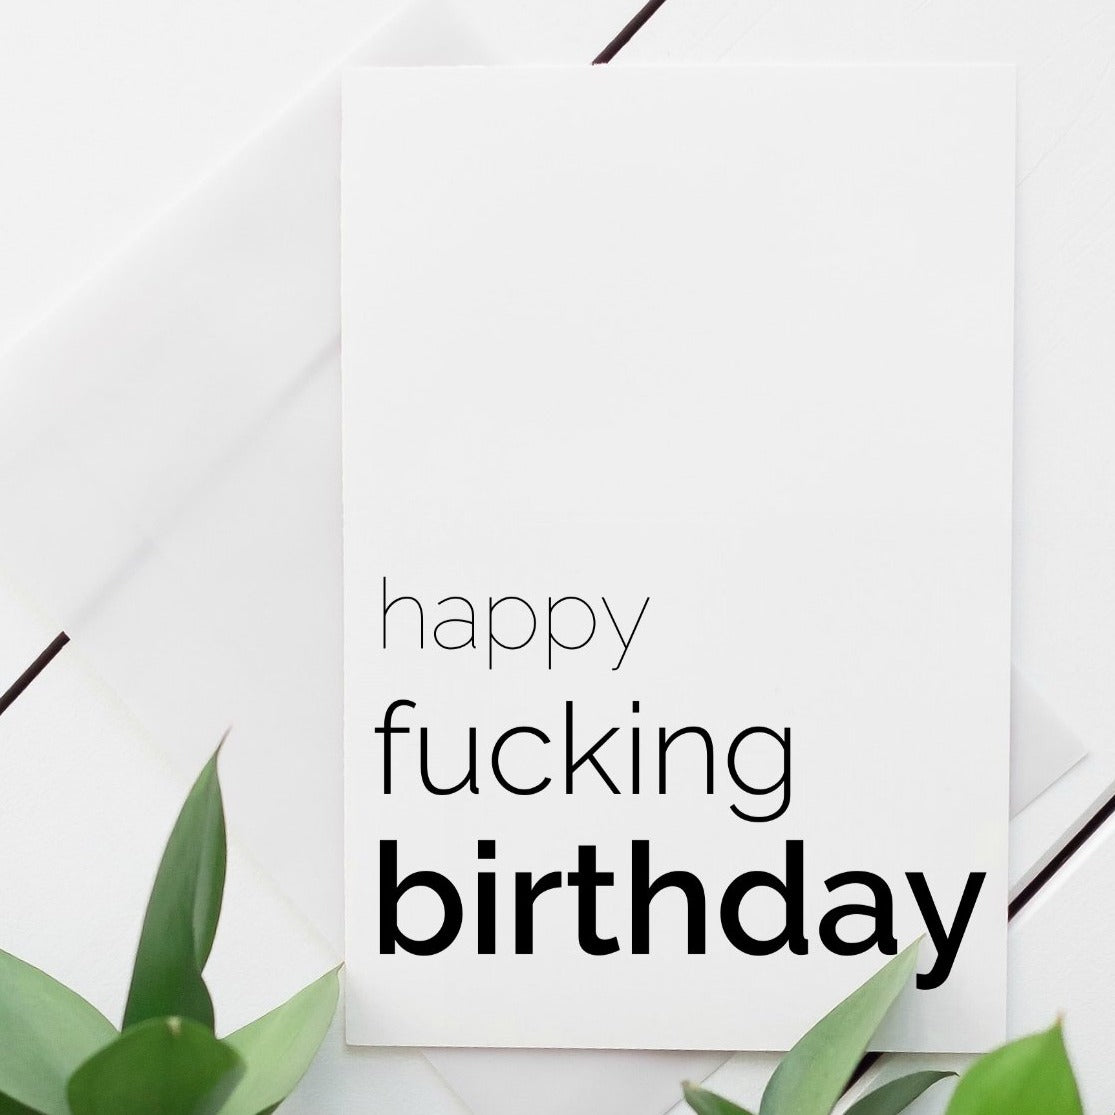 Happy fucking birthday blank greeting card.